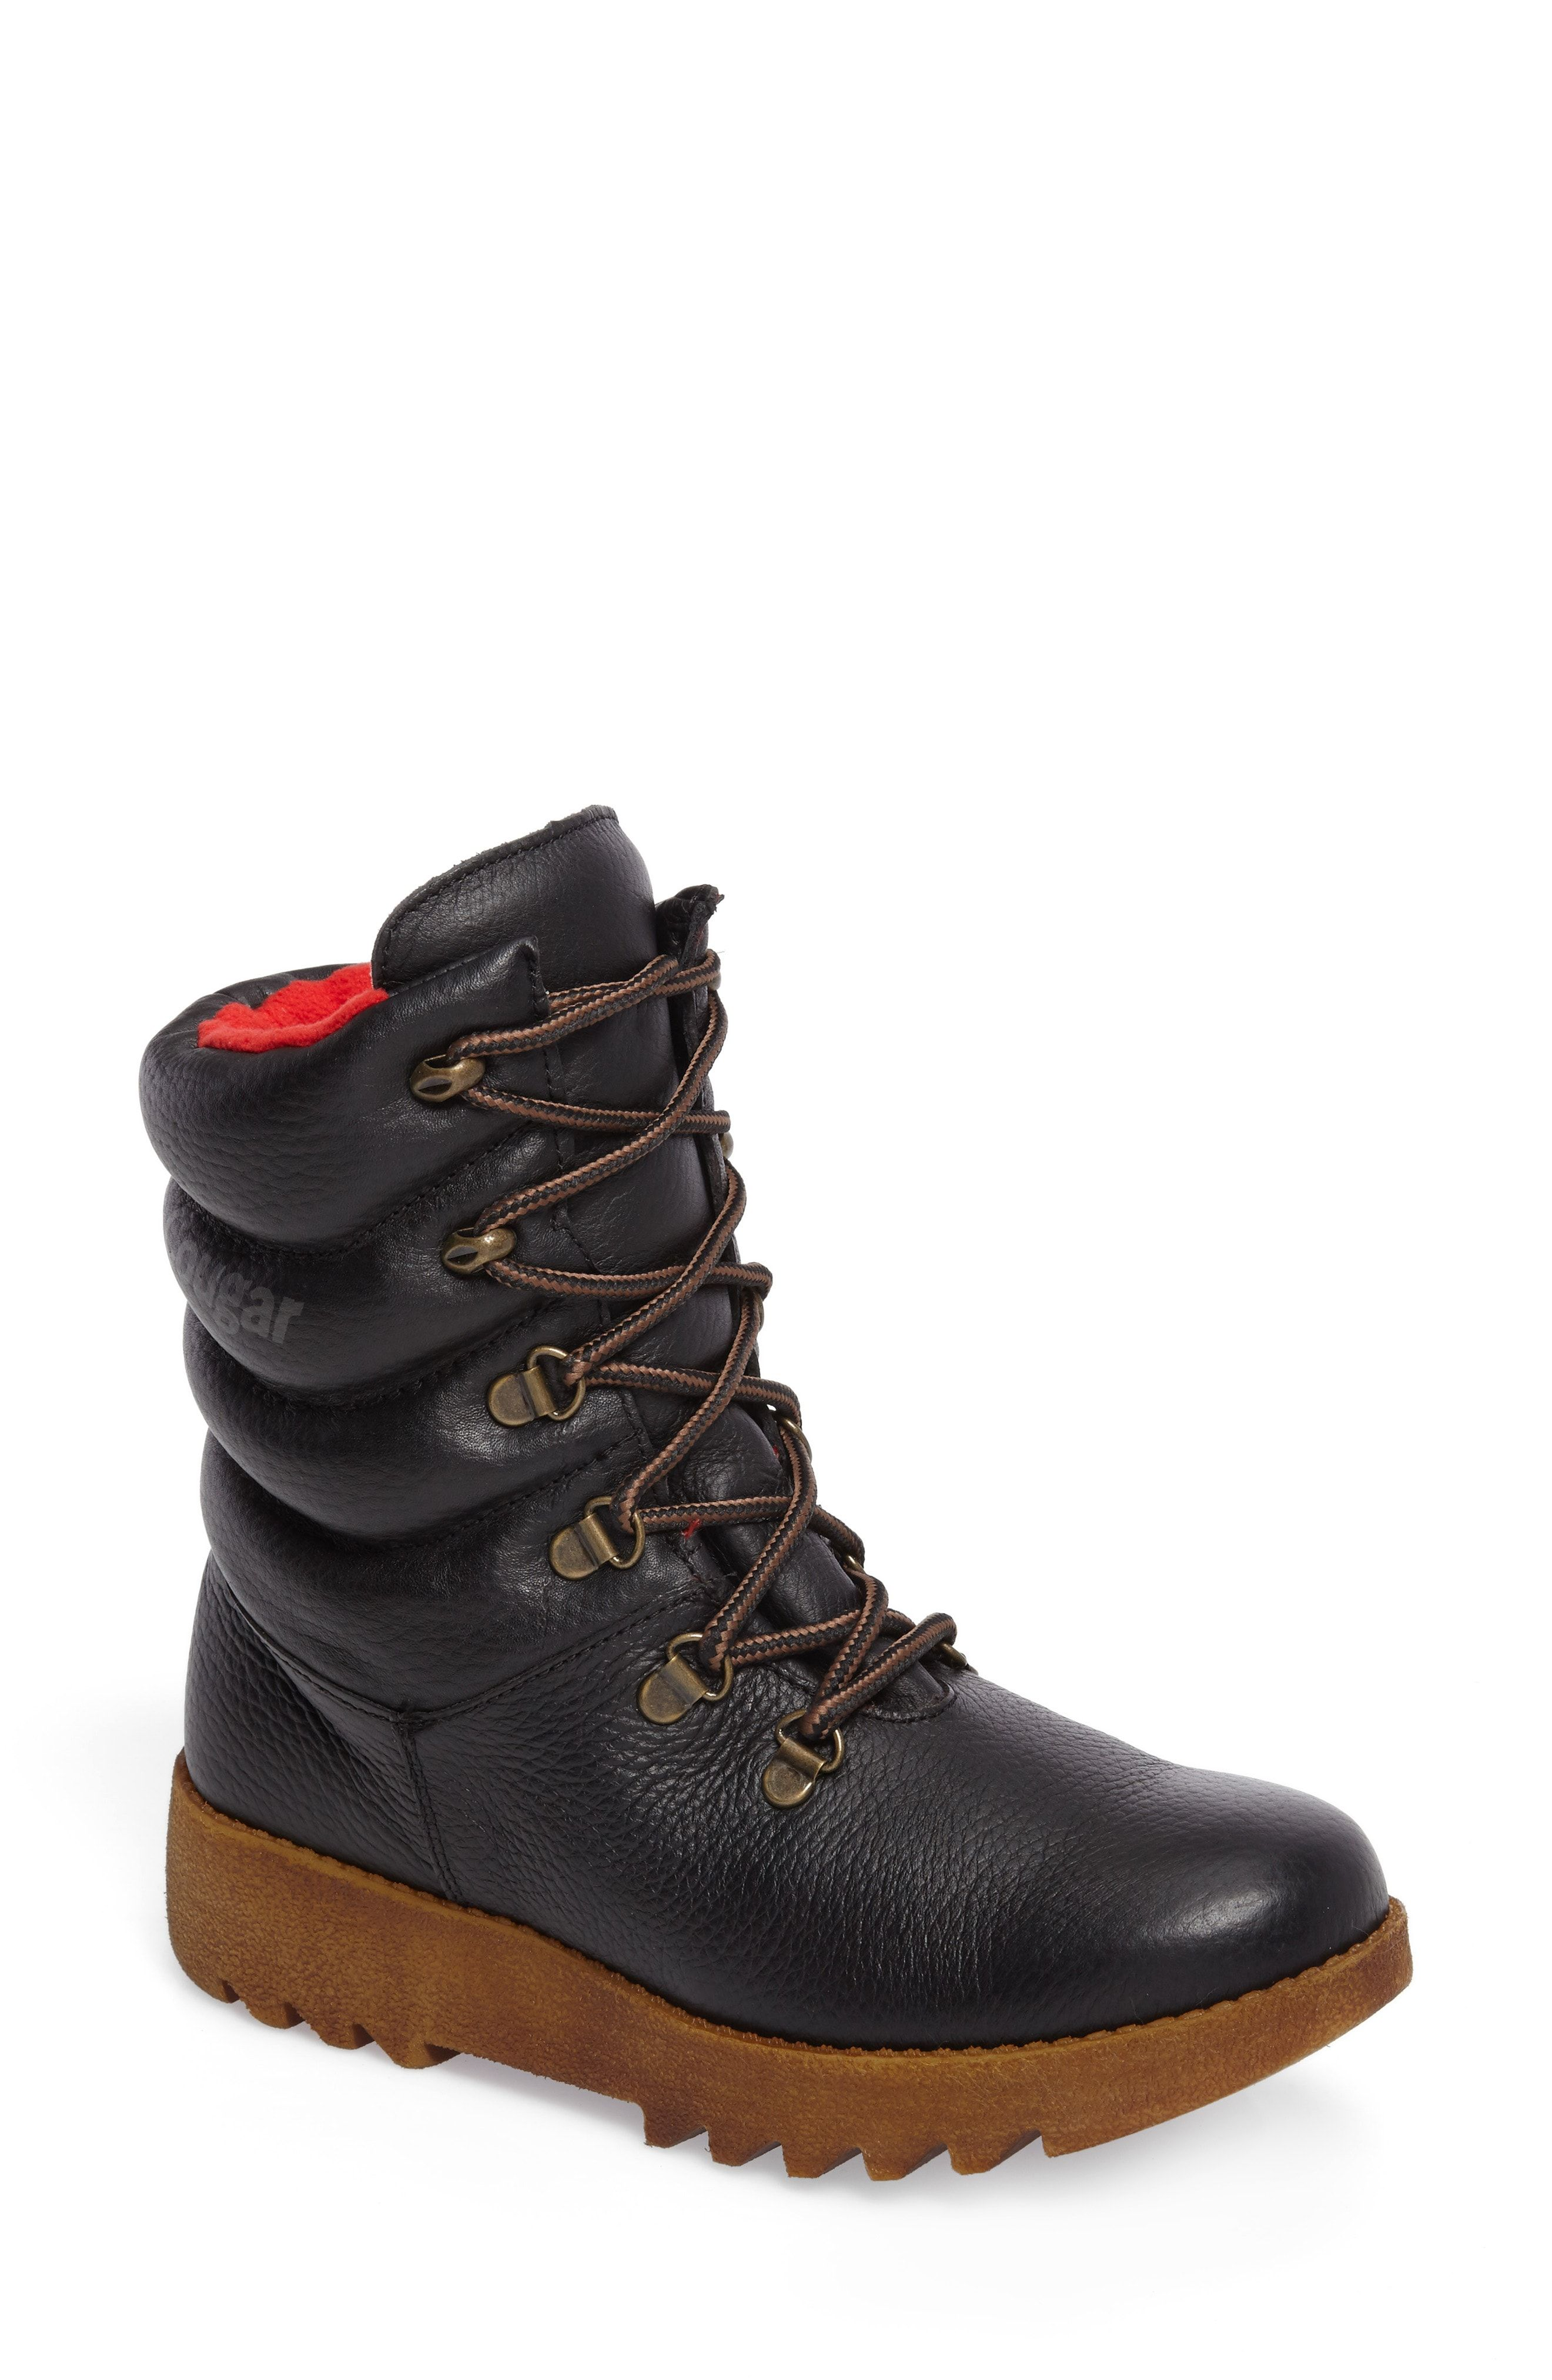 2cba8f815351 25 Most Stylish Winter Boots For Women In 2019 - Cute Winter Boots